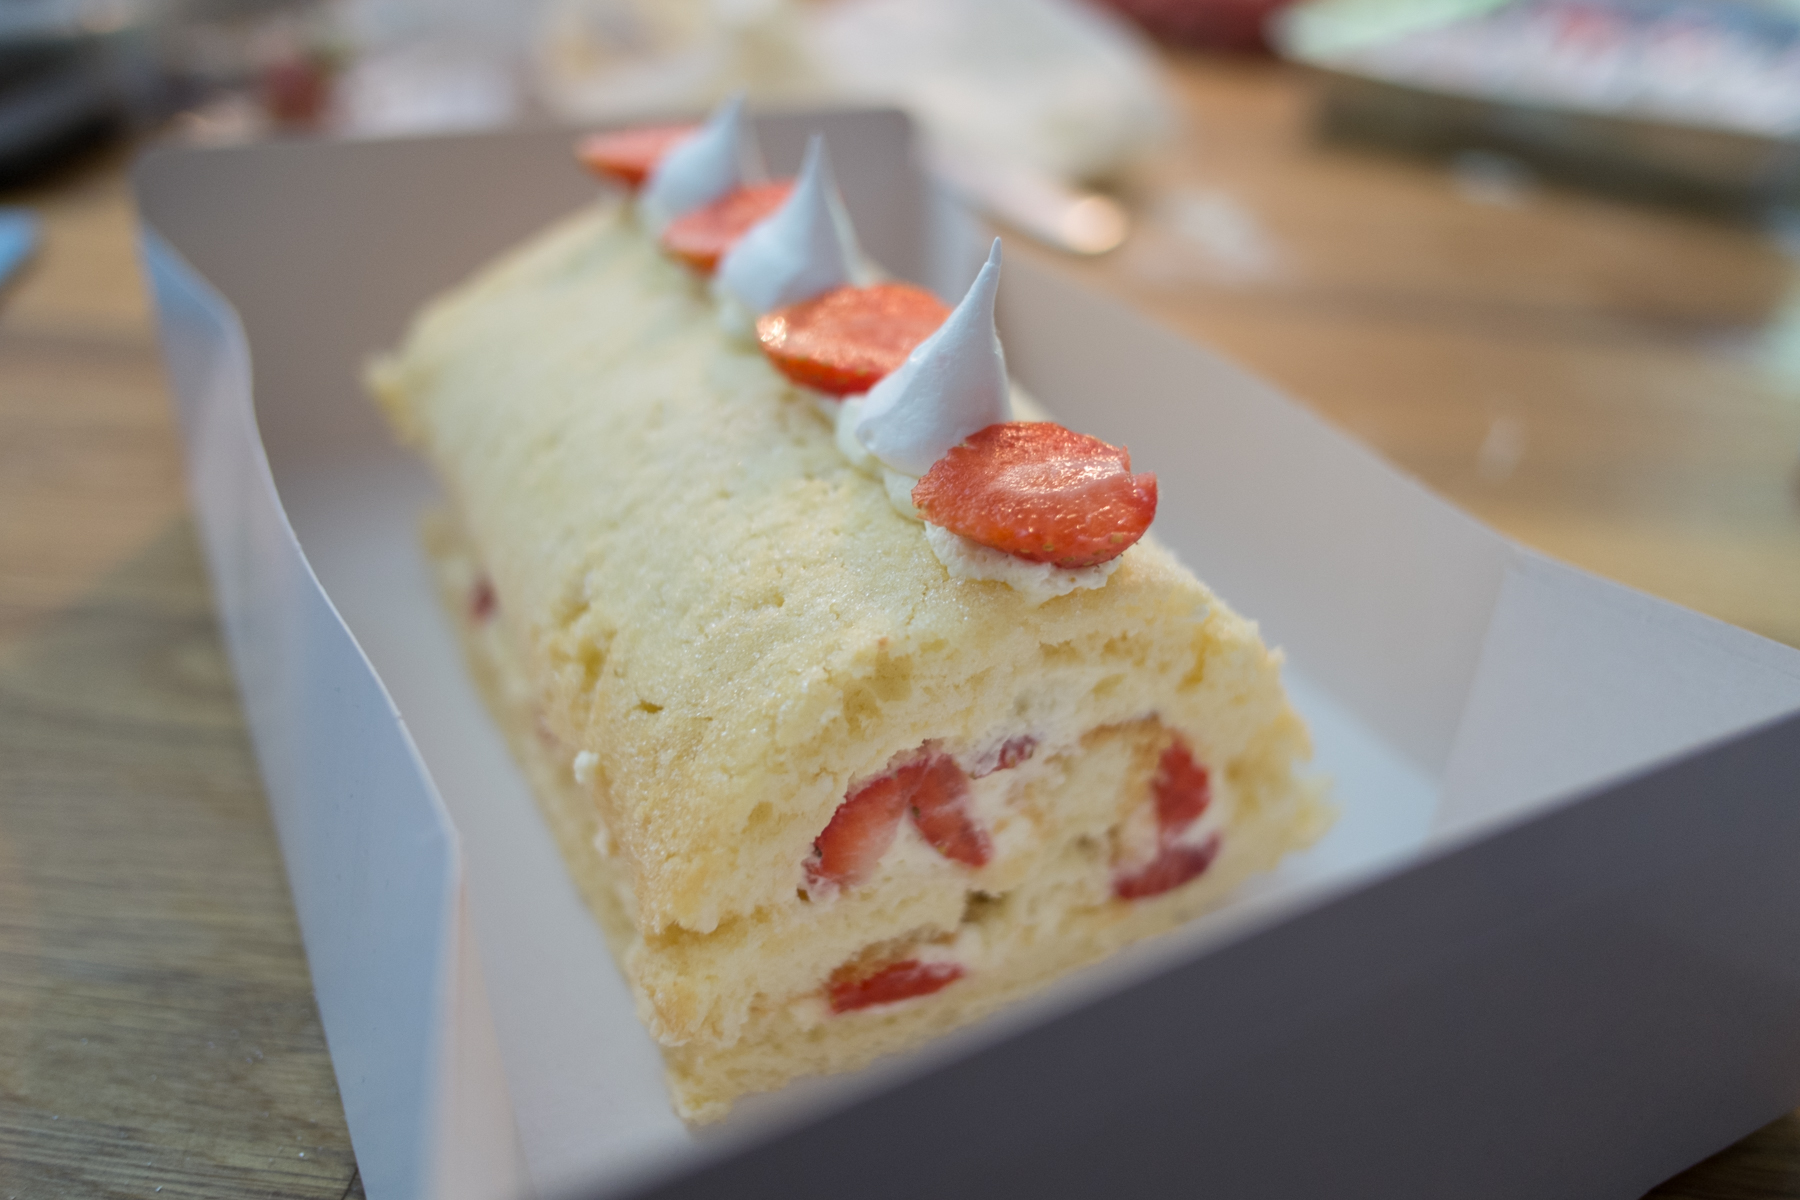 Strawberries & Cream Swiss Roll